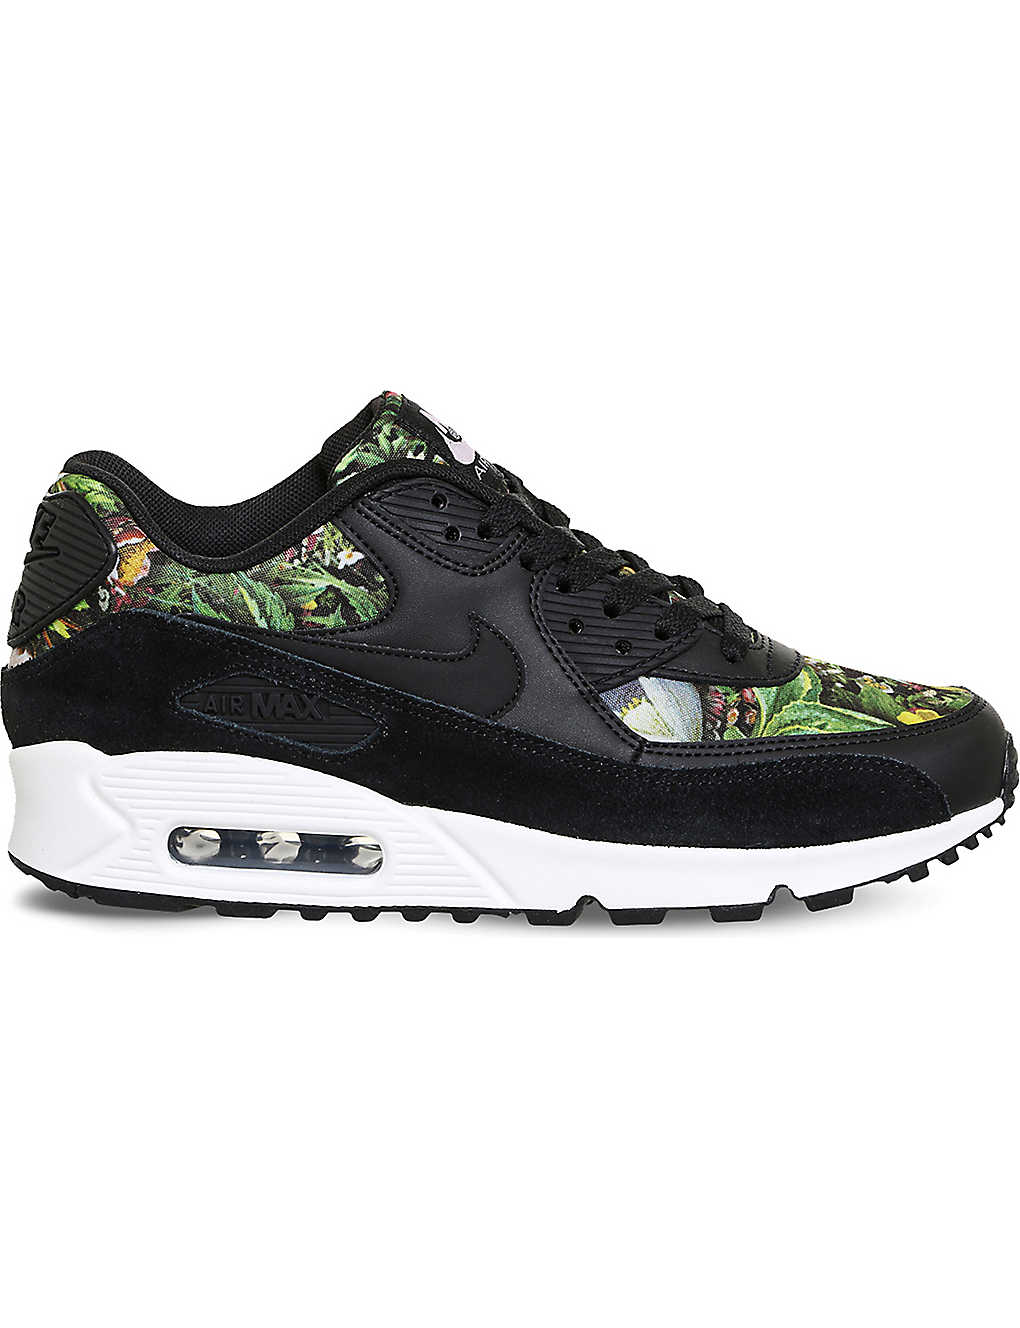 NIKE - Air Max 90 leather floral-print trainers  1ec1f098b2